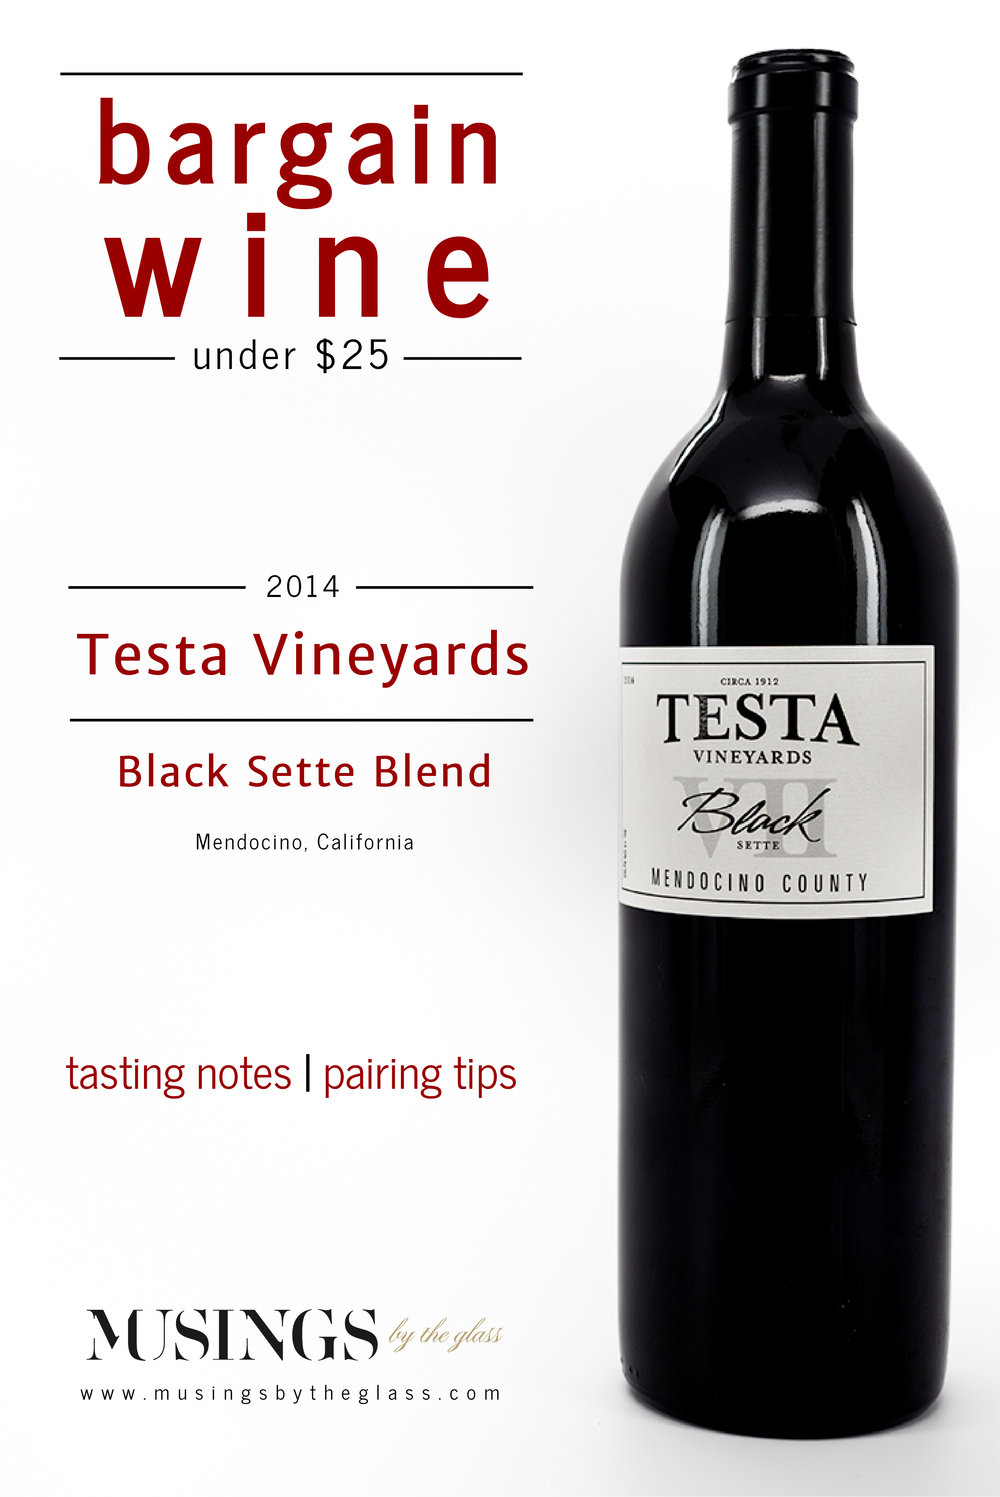 Musings by the Glass - Bargain Wines - Testa Vineyards Black Sette Blend from Mendocino County, California